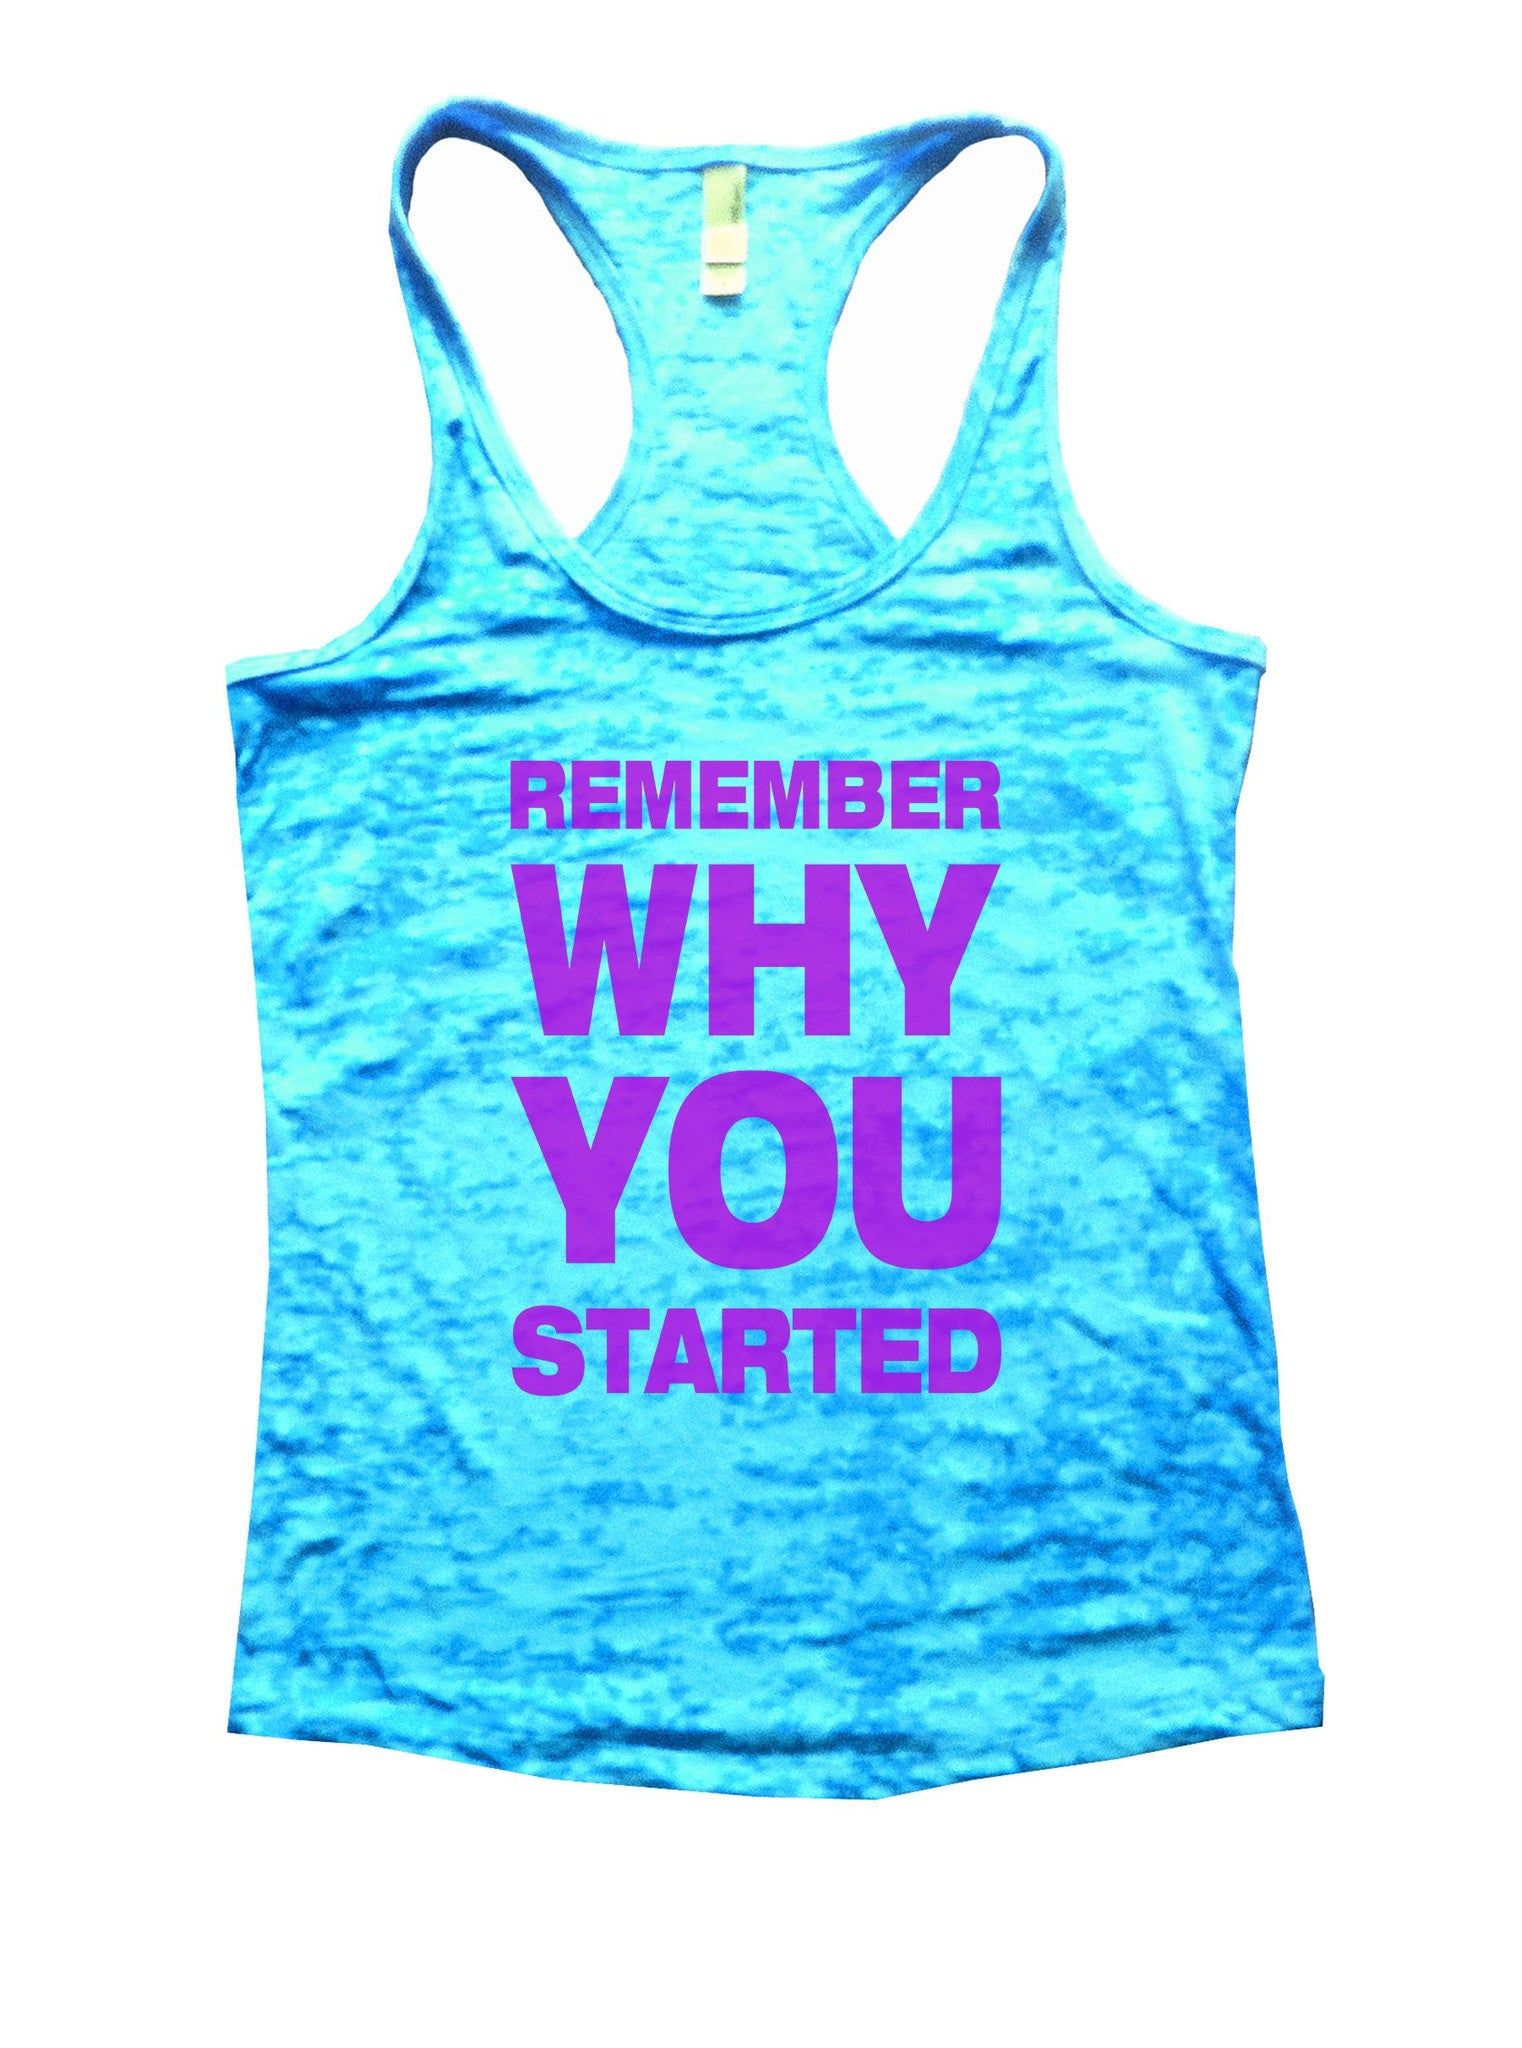 Remember Why You Started Burnout Tank Top By BurnoutTankTops.com - 852 - Funny Shirts Tank Tops Burnouts and Triblends  - 4